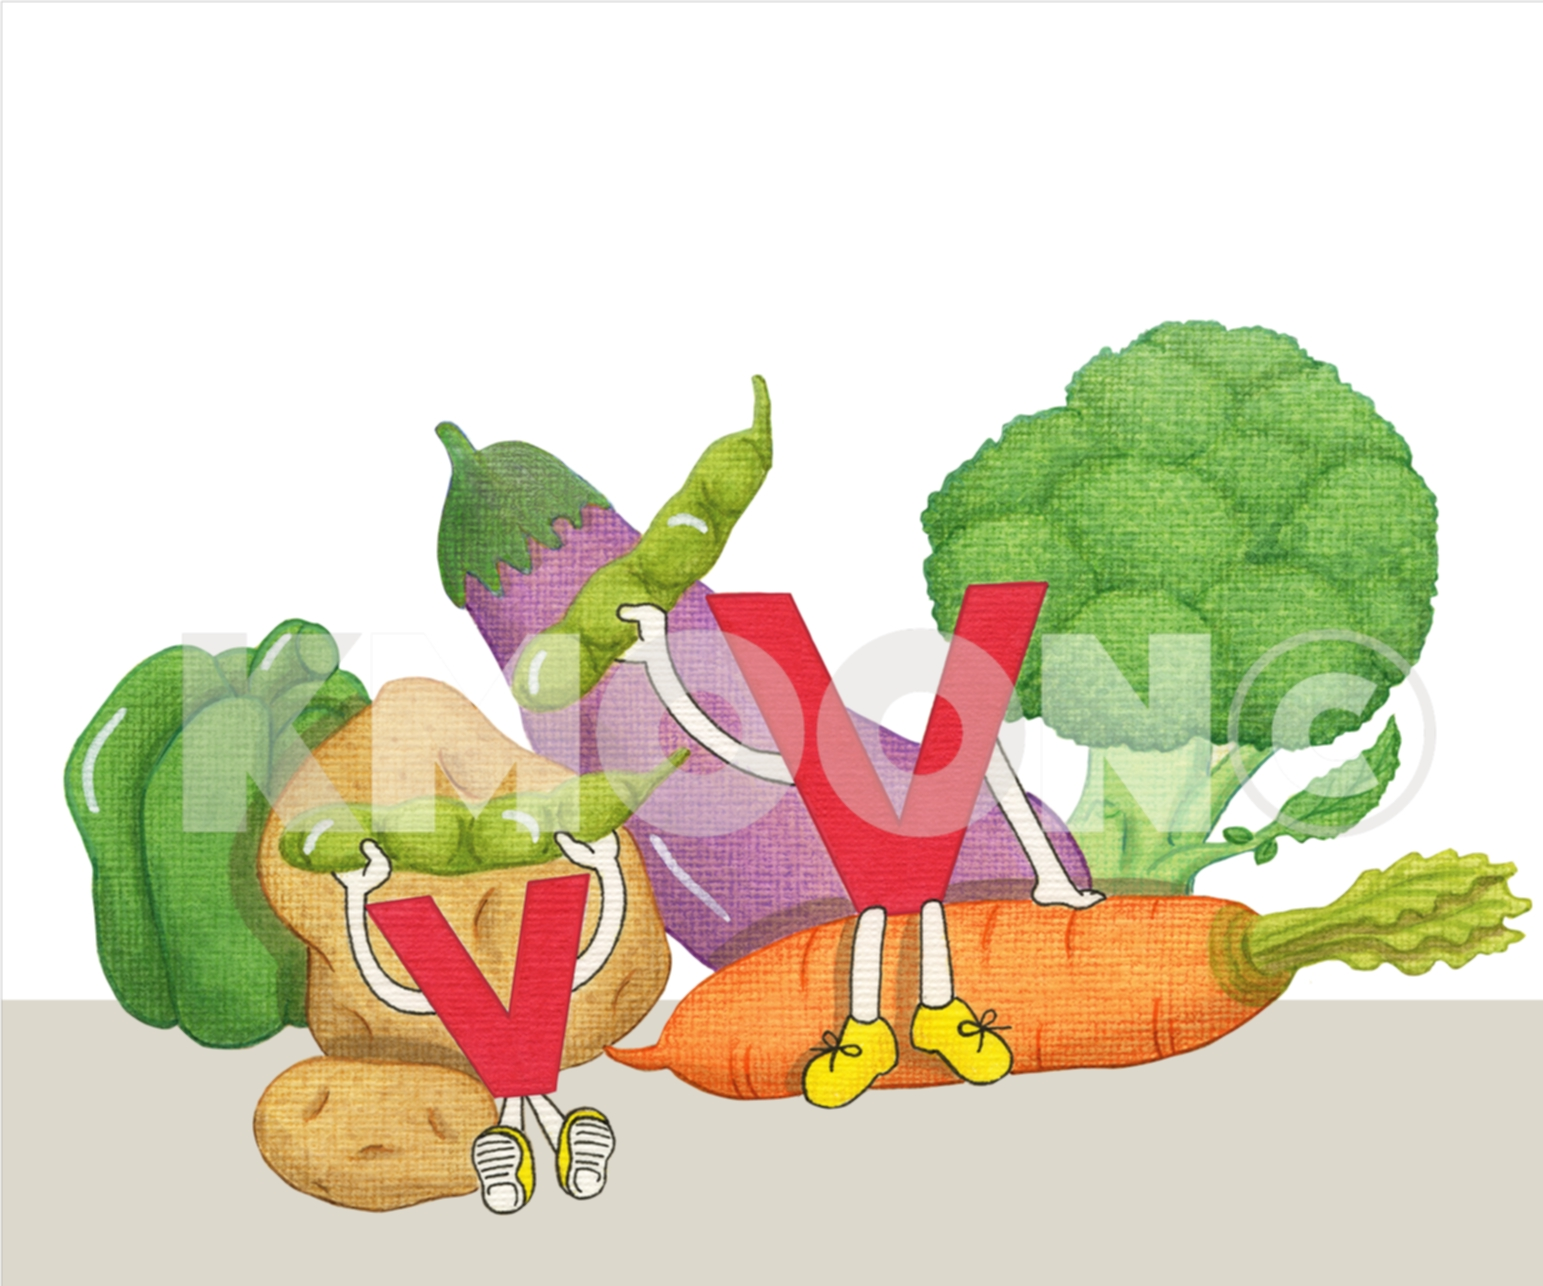 Vv is for ... vegetable